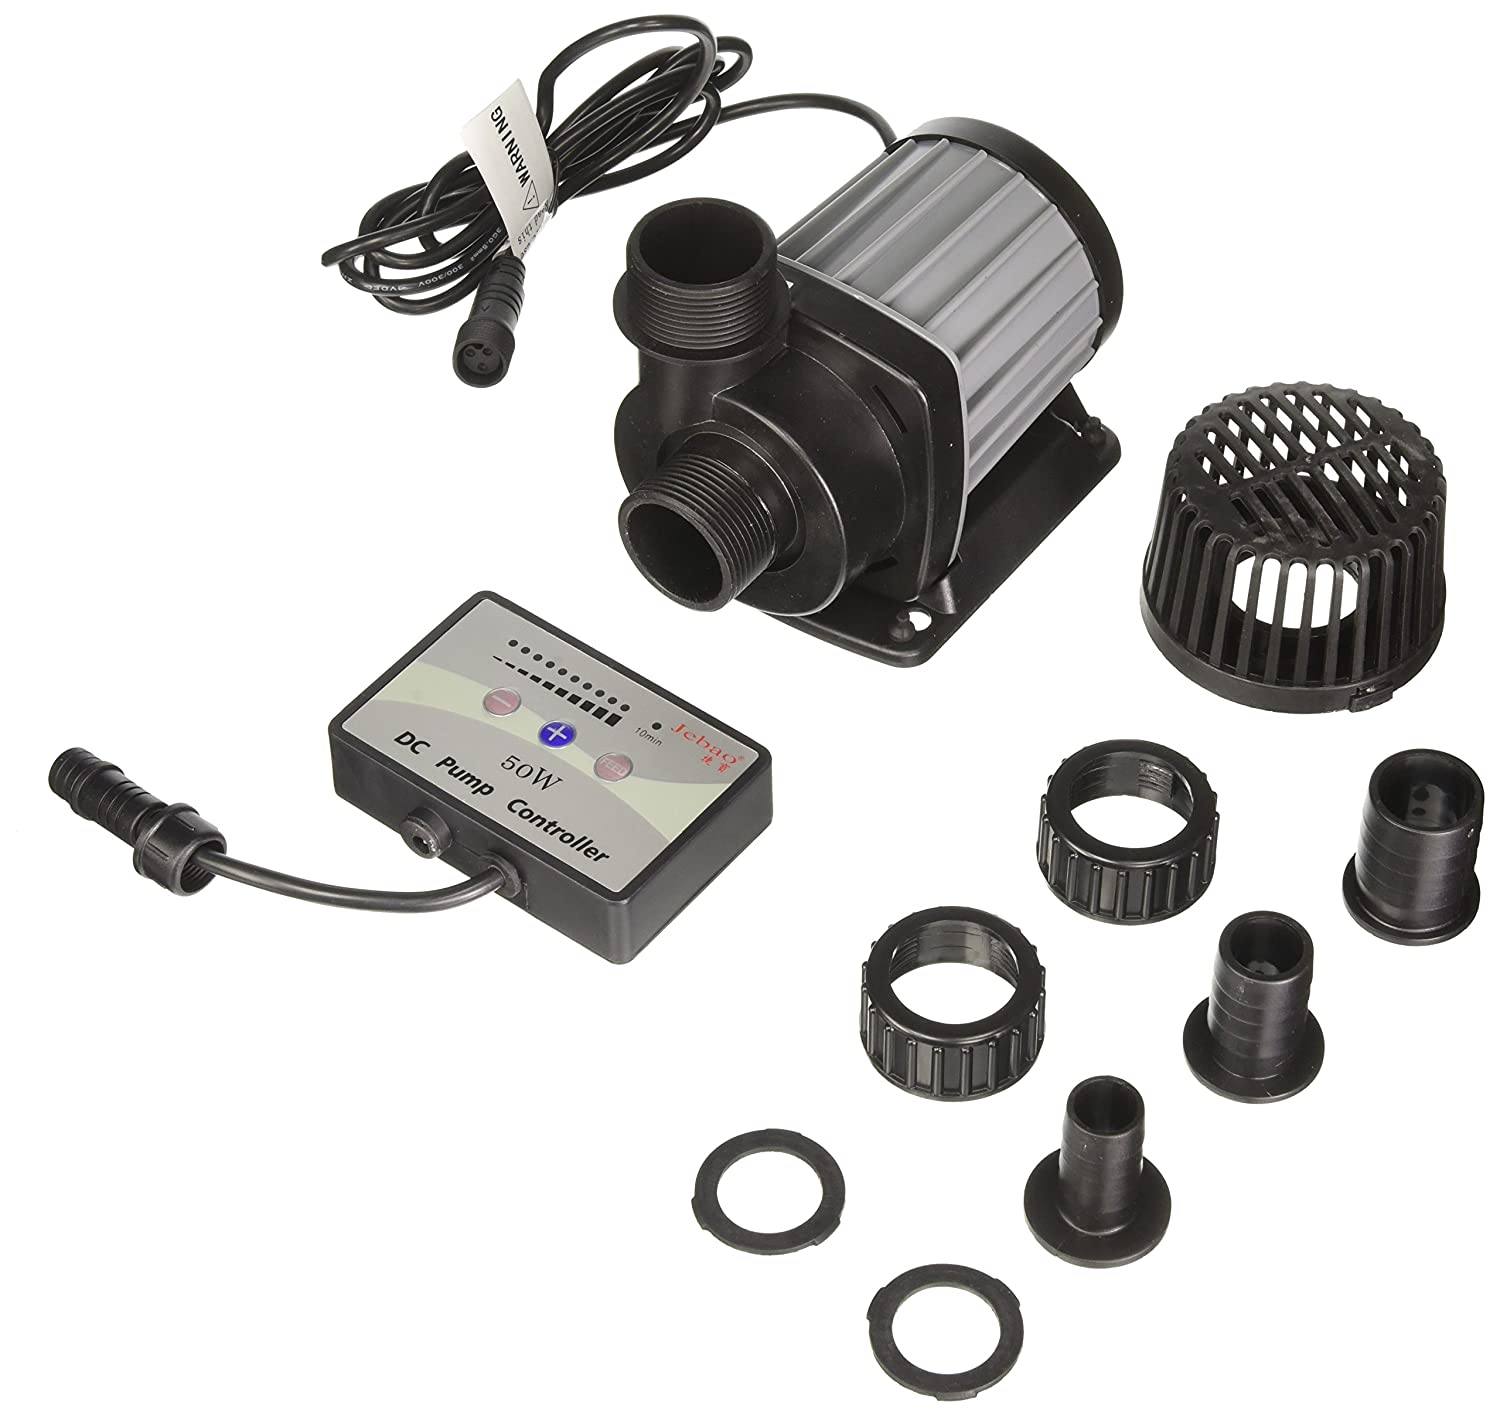 Jecod/Jebao DCT Marine Controllable Water Pump DCT-15000